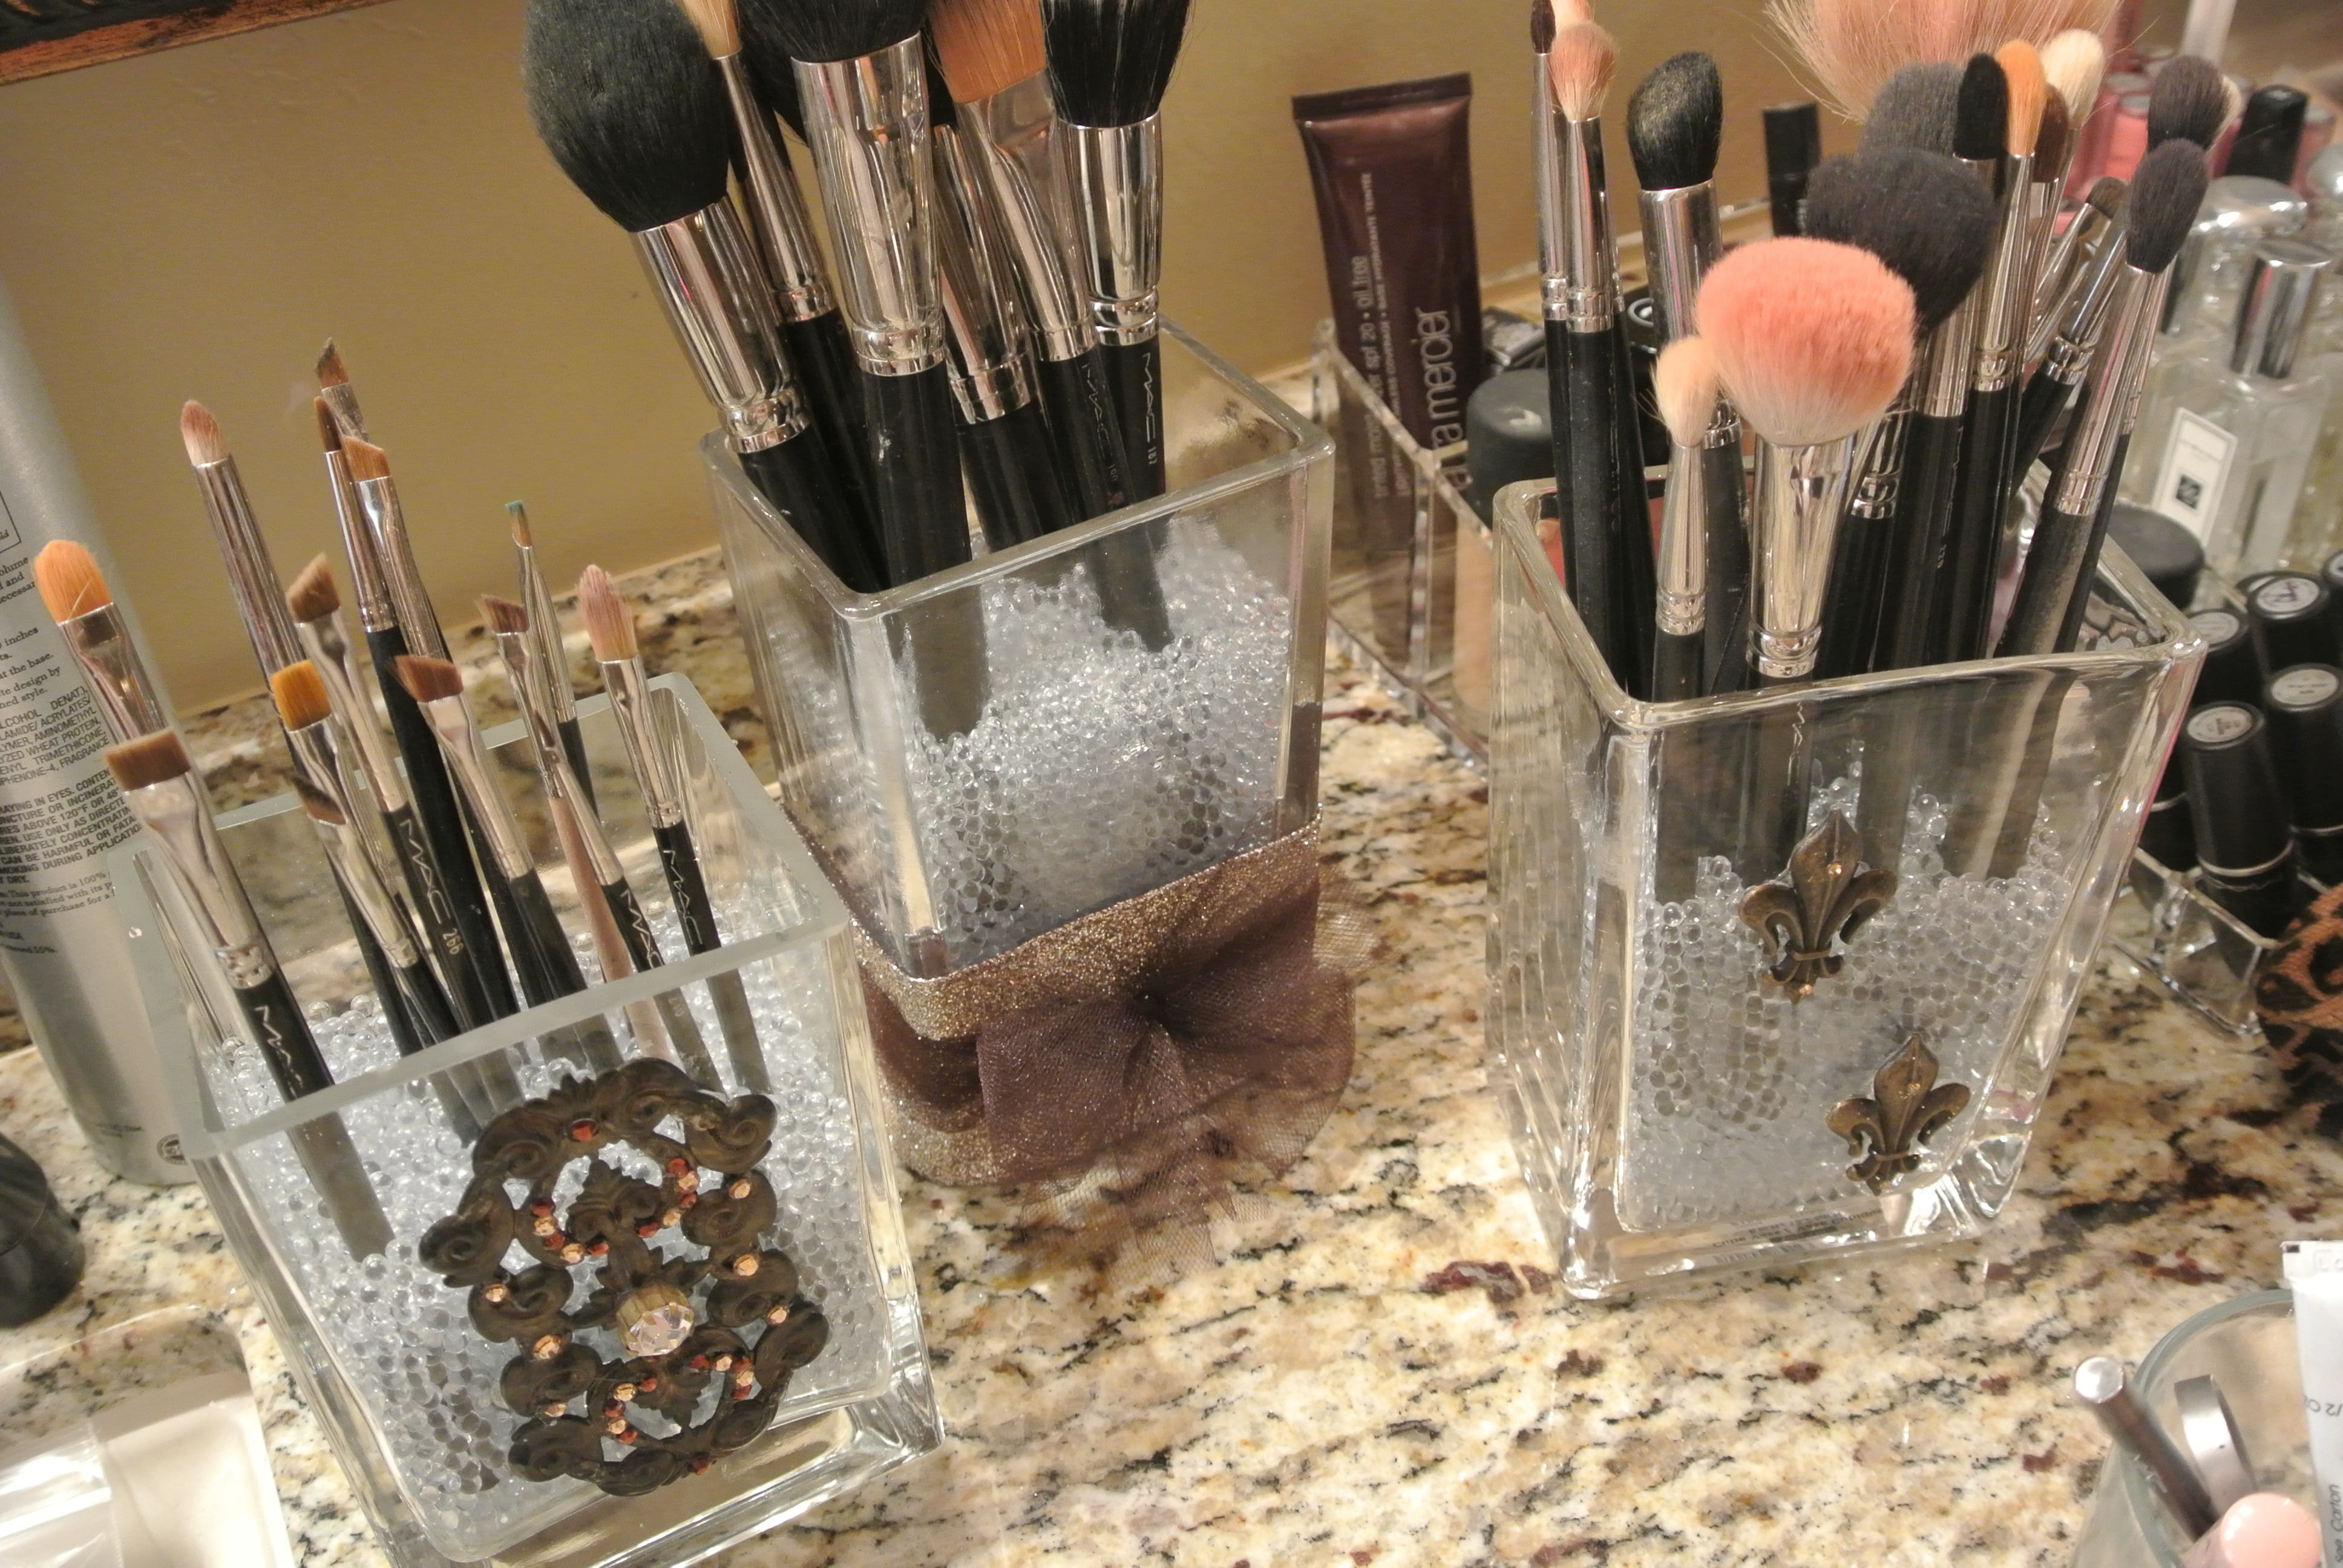 loveleighbeauty-DIY-makeup brushholder-2 · loveleighbeauty-DIY-makeup brush holder & DIY Makeup Brush Holders u2013 Loveleigh Beauty